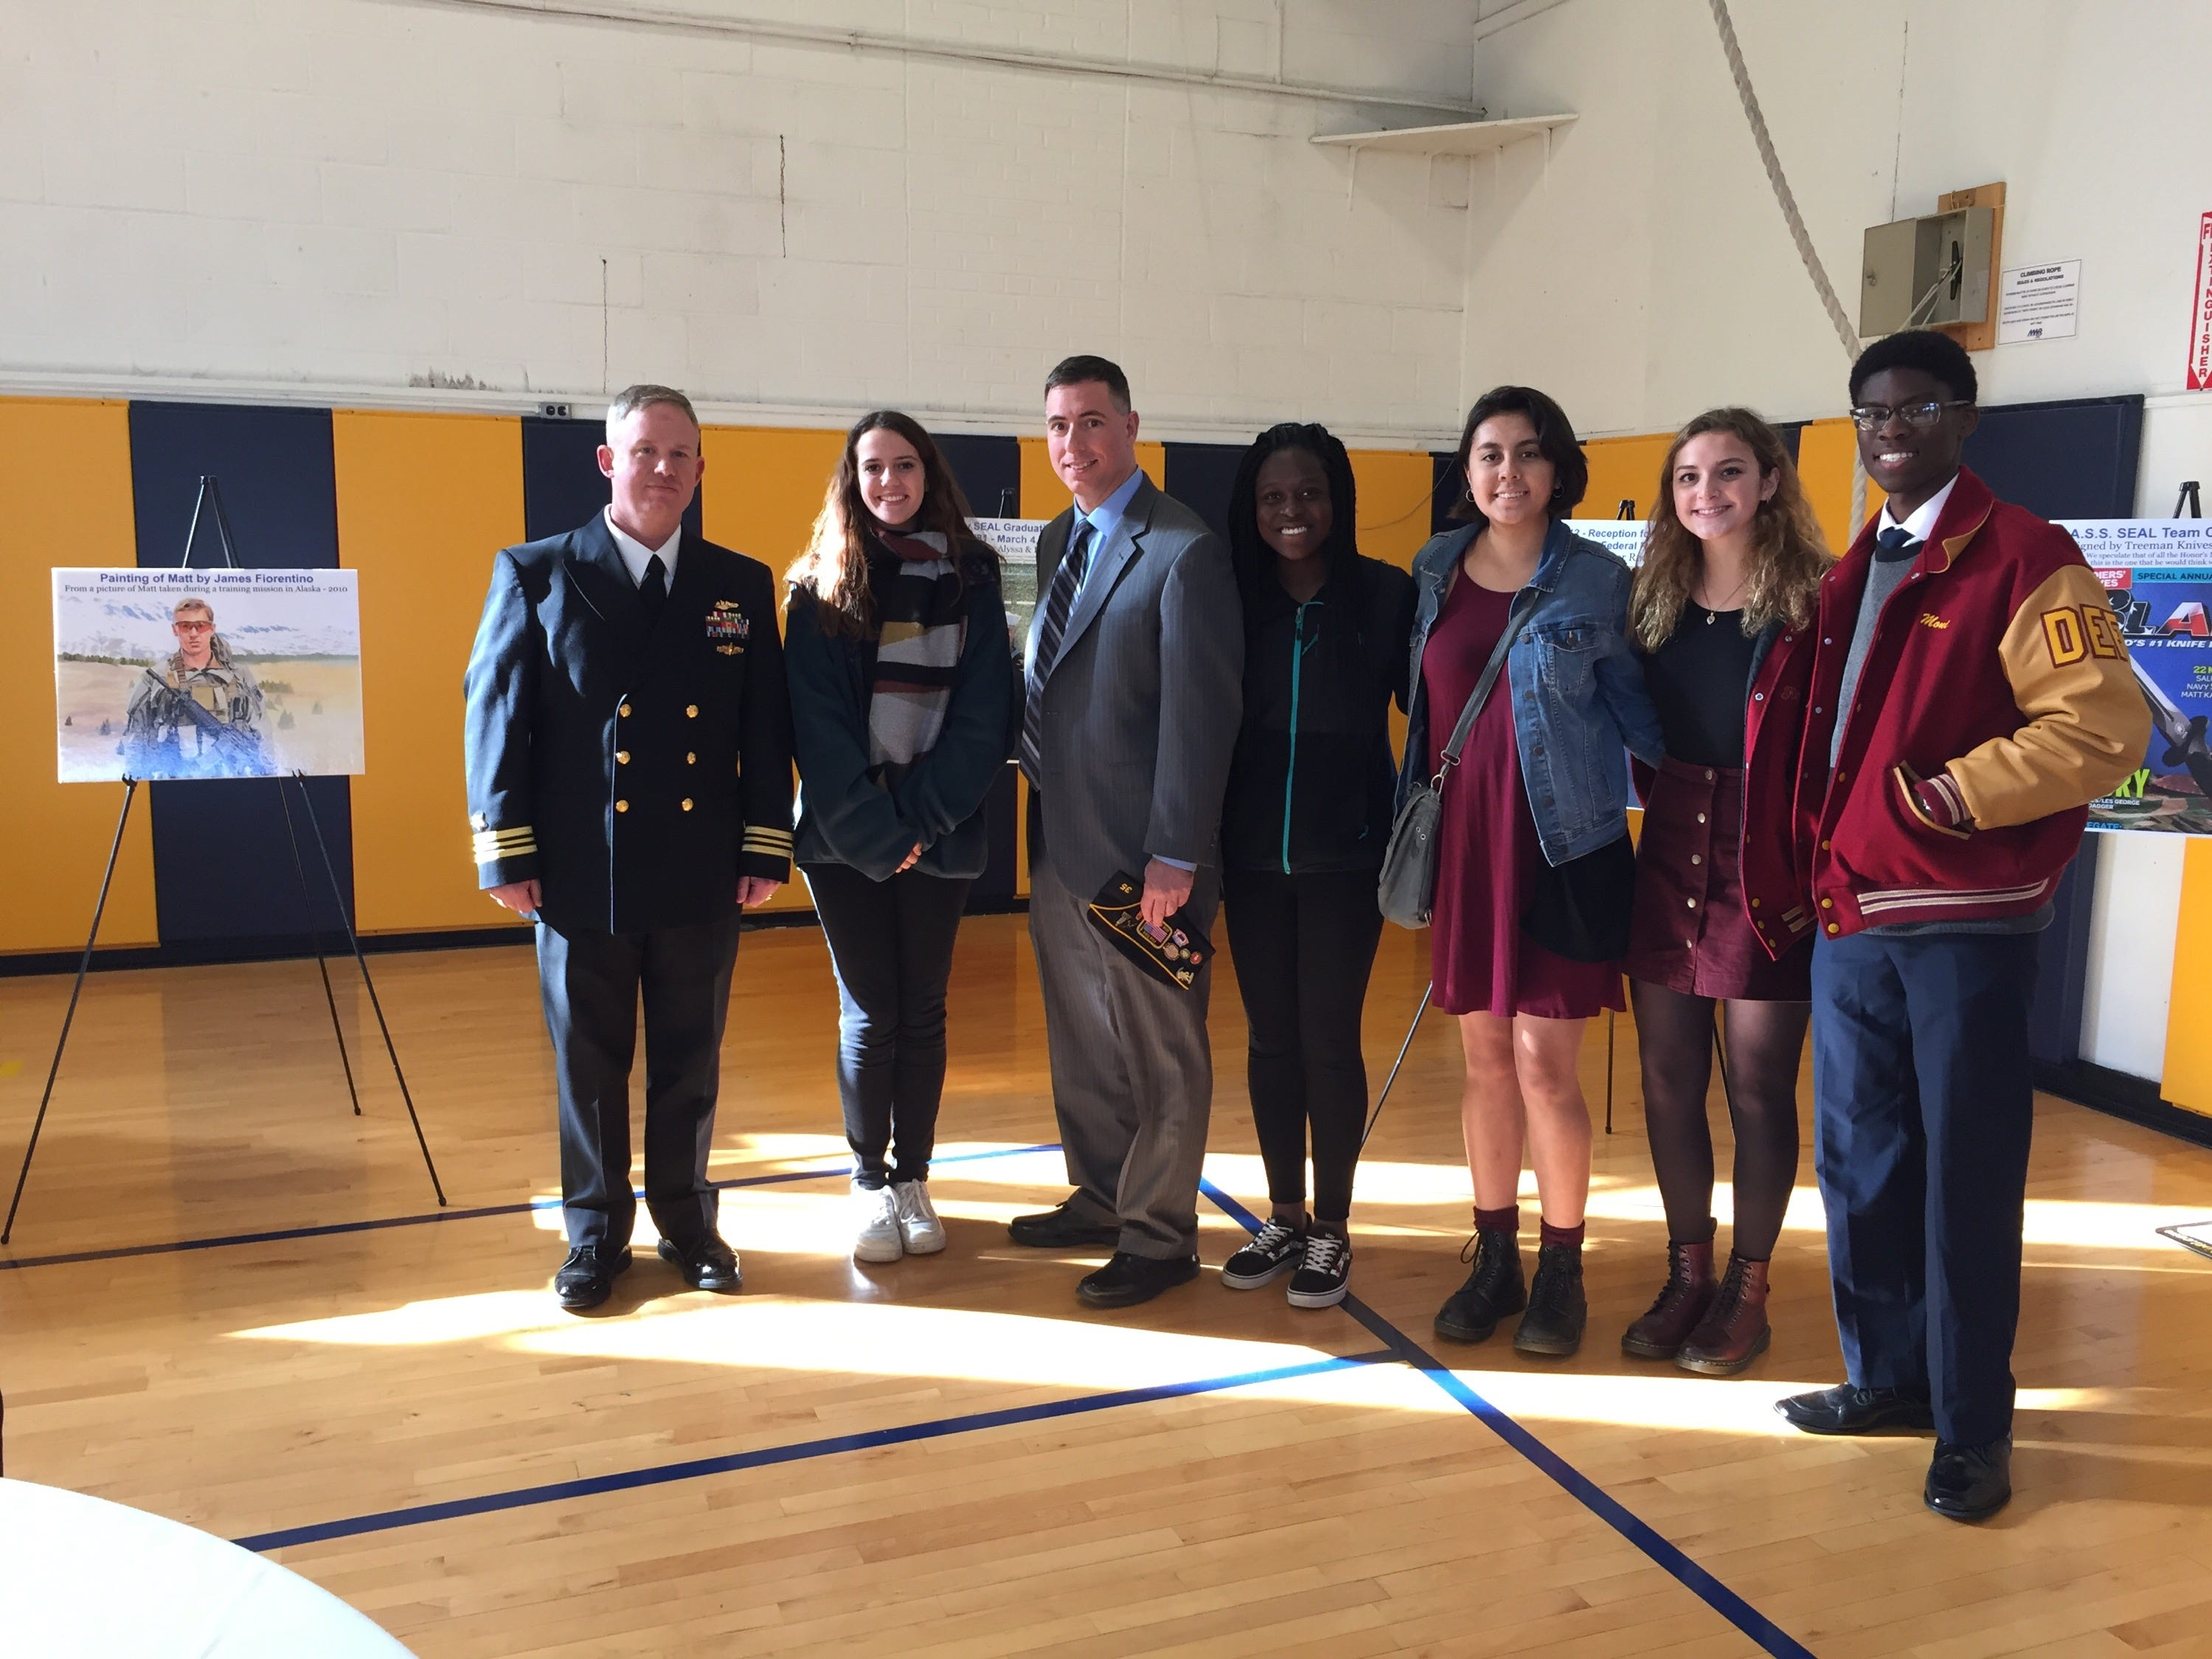 Left to right: Executive Officer LCDR Eric P. Rion, Mackenzie Toth of Milford, Somerset County Vocational & Technical High School Social Studies Instructor Ed Graf, Eka Tawe of Hillsborough, Anna Ramos of Warren, Mae Kinst of Hillsborough and Jamie Moni of Hillsborough.